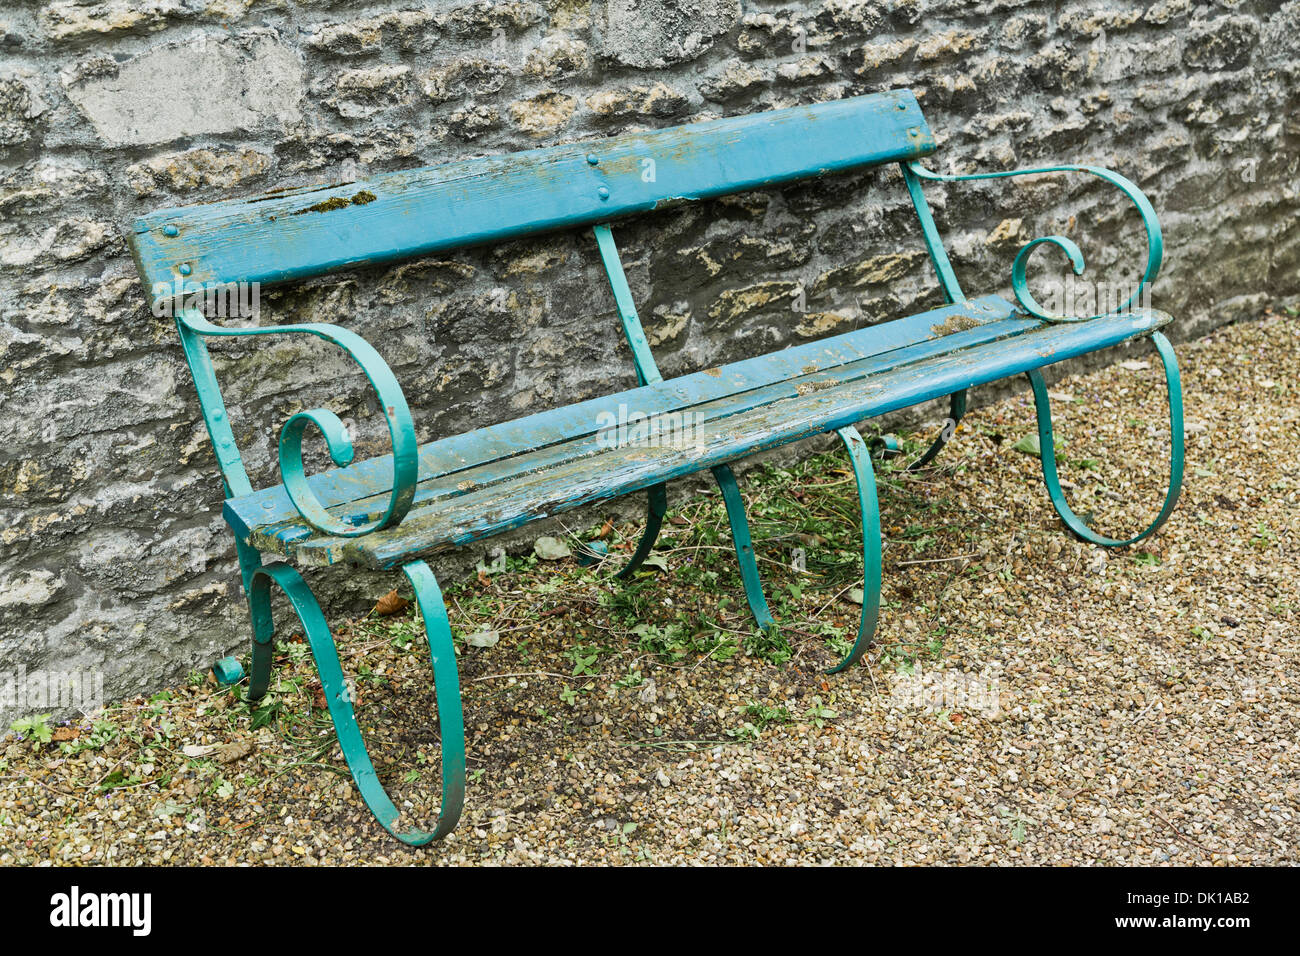 Old Garden Bench With Wooden Slats And Cast Iron Frame